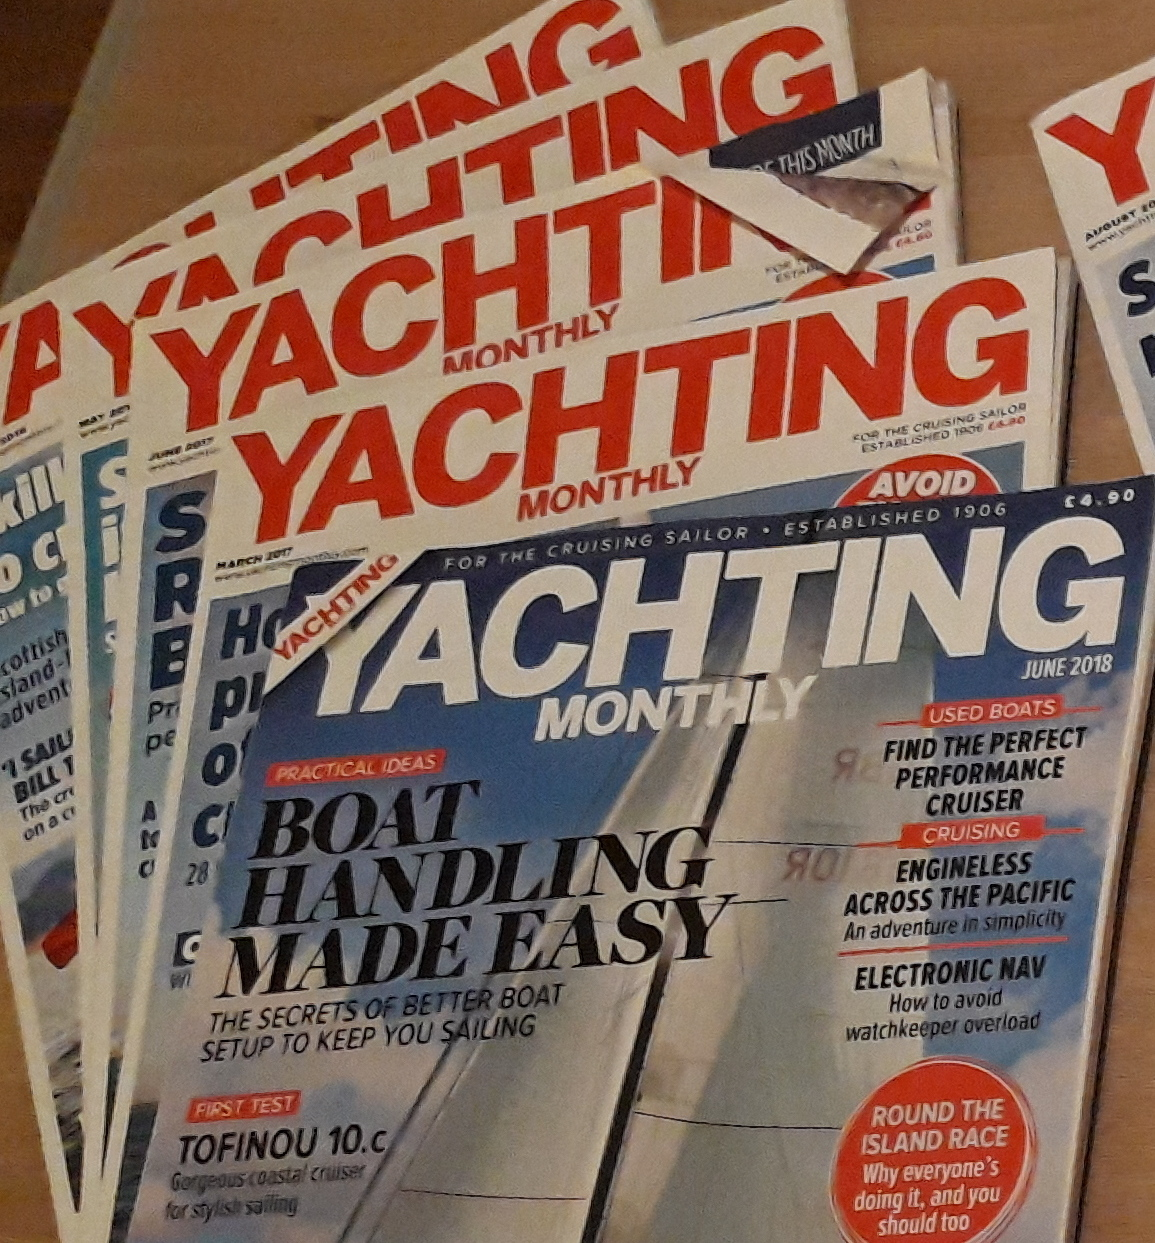 5 x yachting monthly magazines  image 1